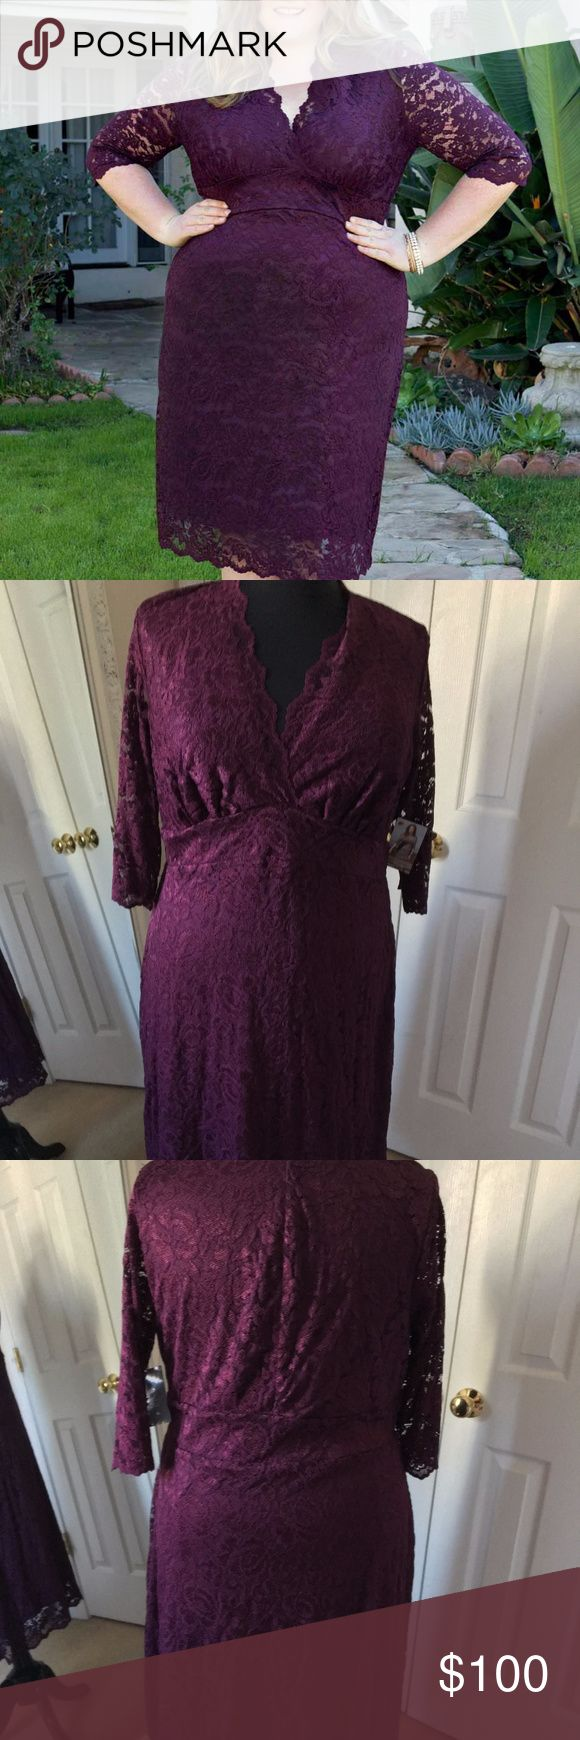 """Kiyonna Scalloped Lace Boudoir Dress Plum 2X 18 20 New with tags Kiyonna Scalloped Lace Boudoir dress in plum lace with plum lining, size 2X (18/20).    Lace: 62% Nylon, 27% Rayon, 11% Spandex; Lining: 100% Polyester Scalloped lace on neckline, sleeves and hem Fully lined except sleeves 17 1/2"""" sleeve length. 3"""" wide empire waist band, measuring approximately 41"""" around, relaxed. ~45 1/2"""" length from high point of shoulder to hem Kiyonna Dresses Midi"""